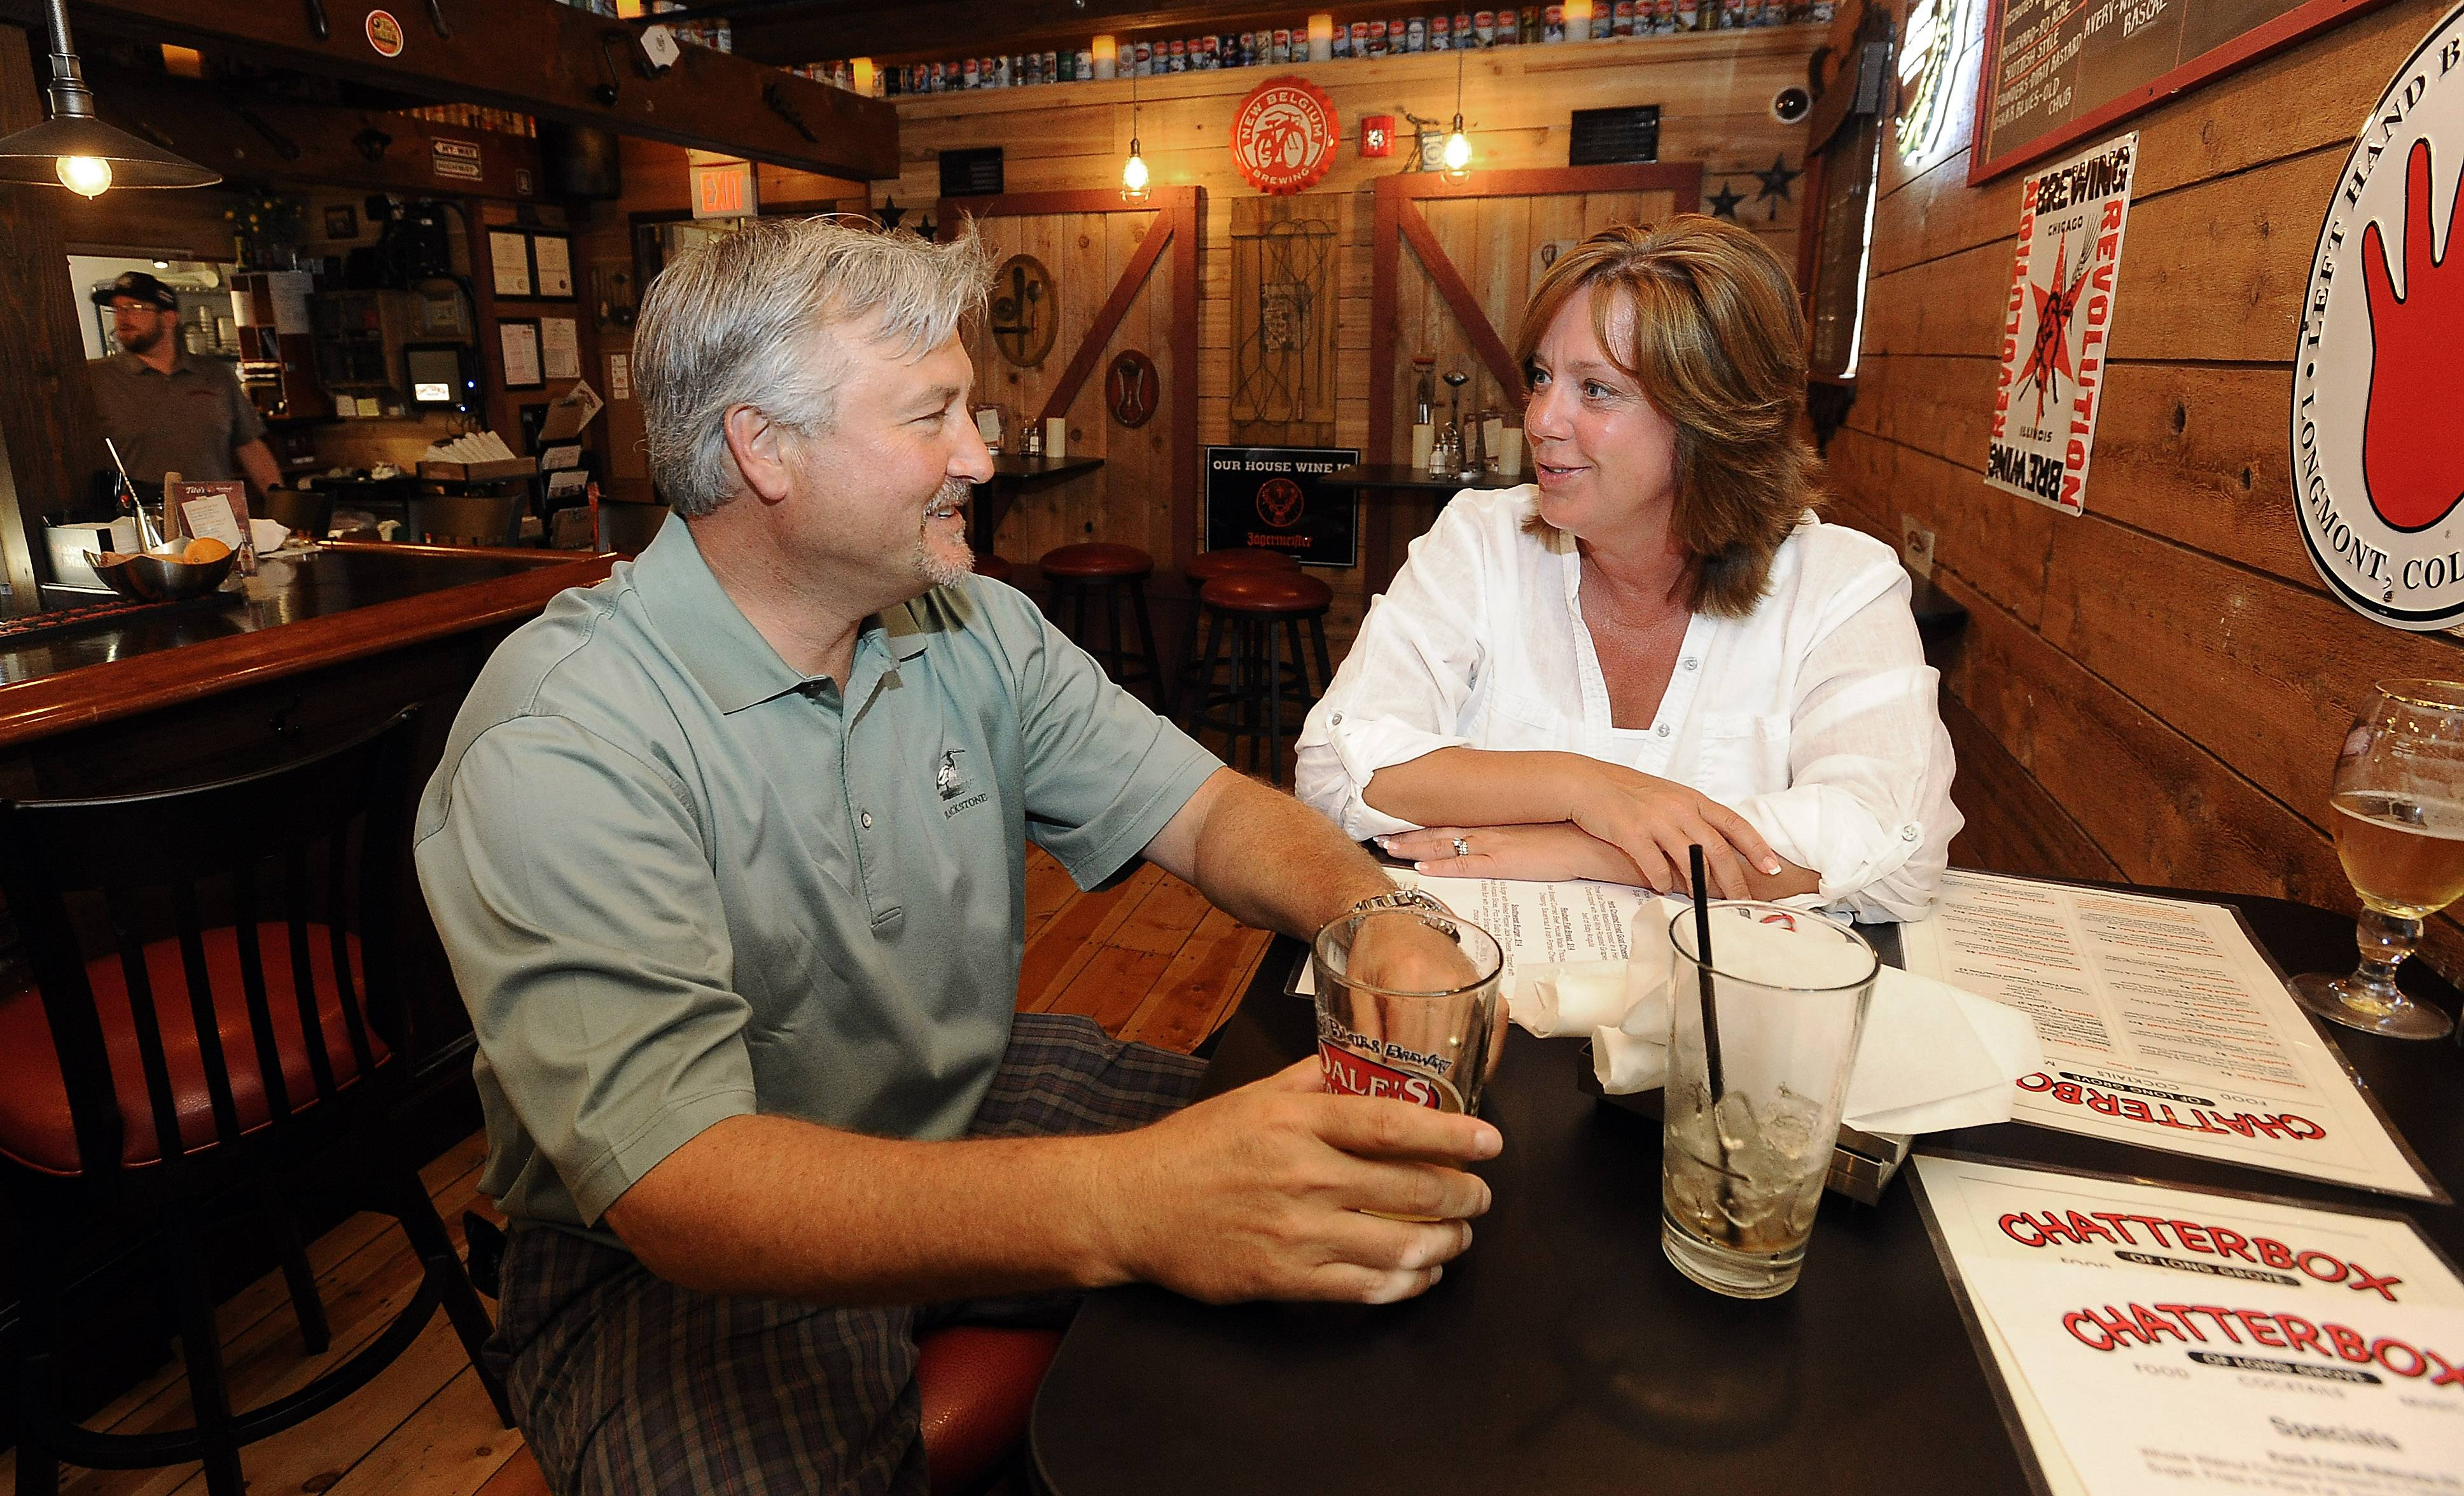 Kevin and Chrissie Wilson of Hawthorn Woods enjoy drinks and dinner at the Chatterbox of Long Grove.